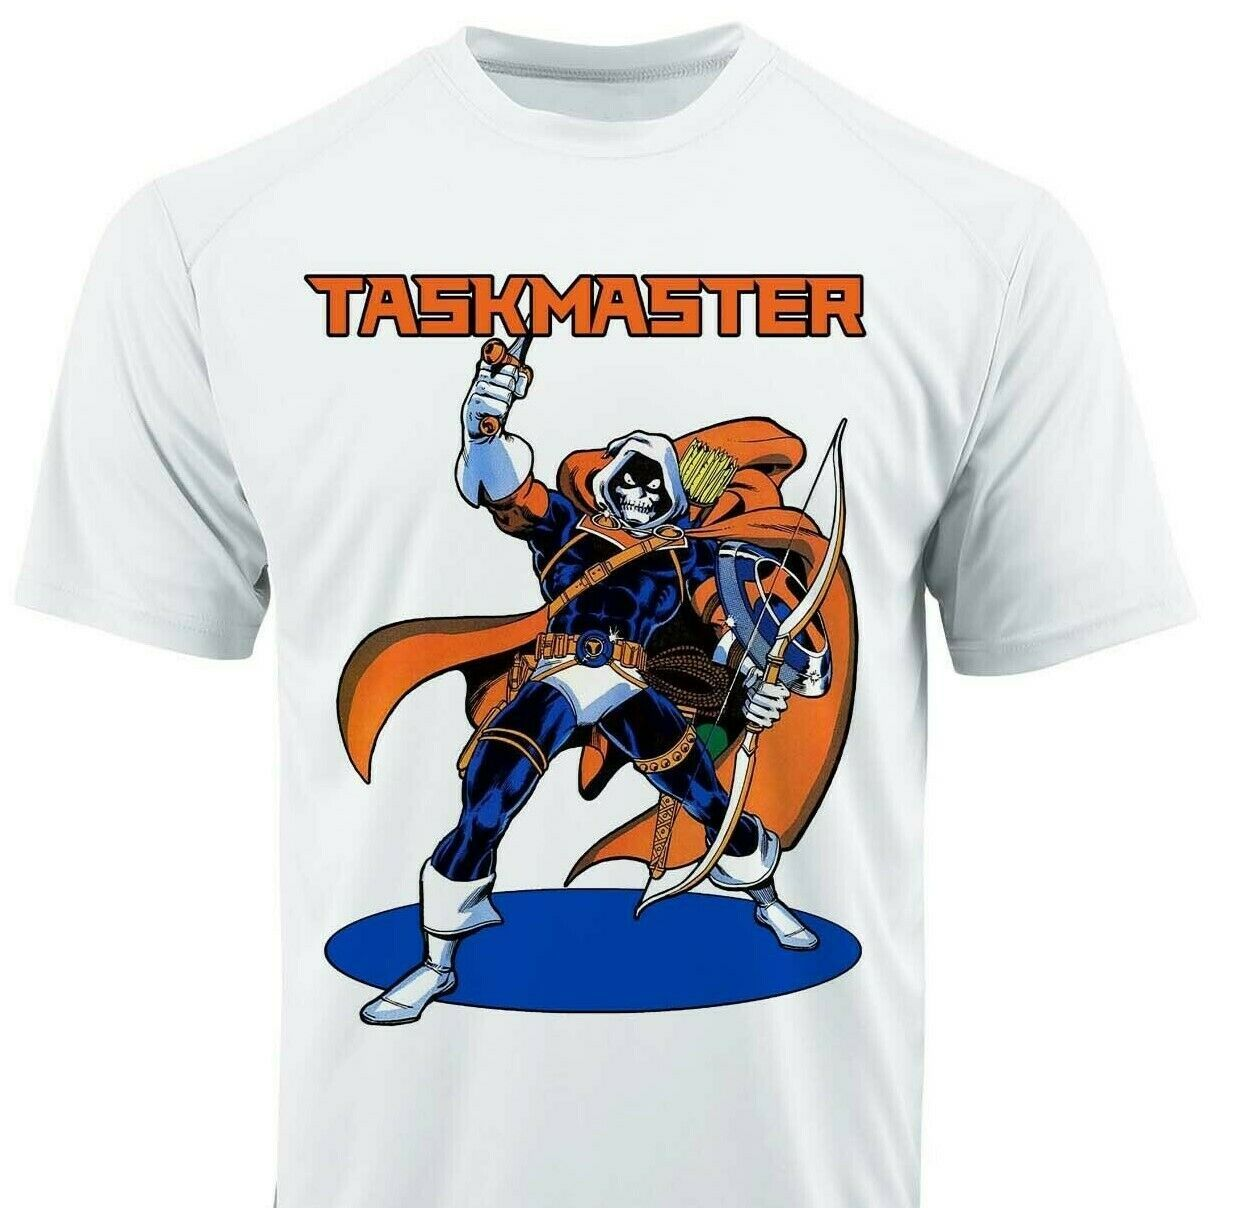 Taskmaster Dri Fit graphic T-shirt microfiber superhero retro comic Sun Shirt